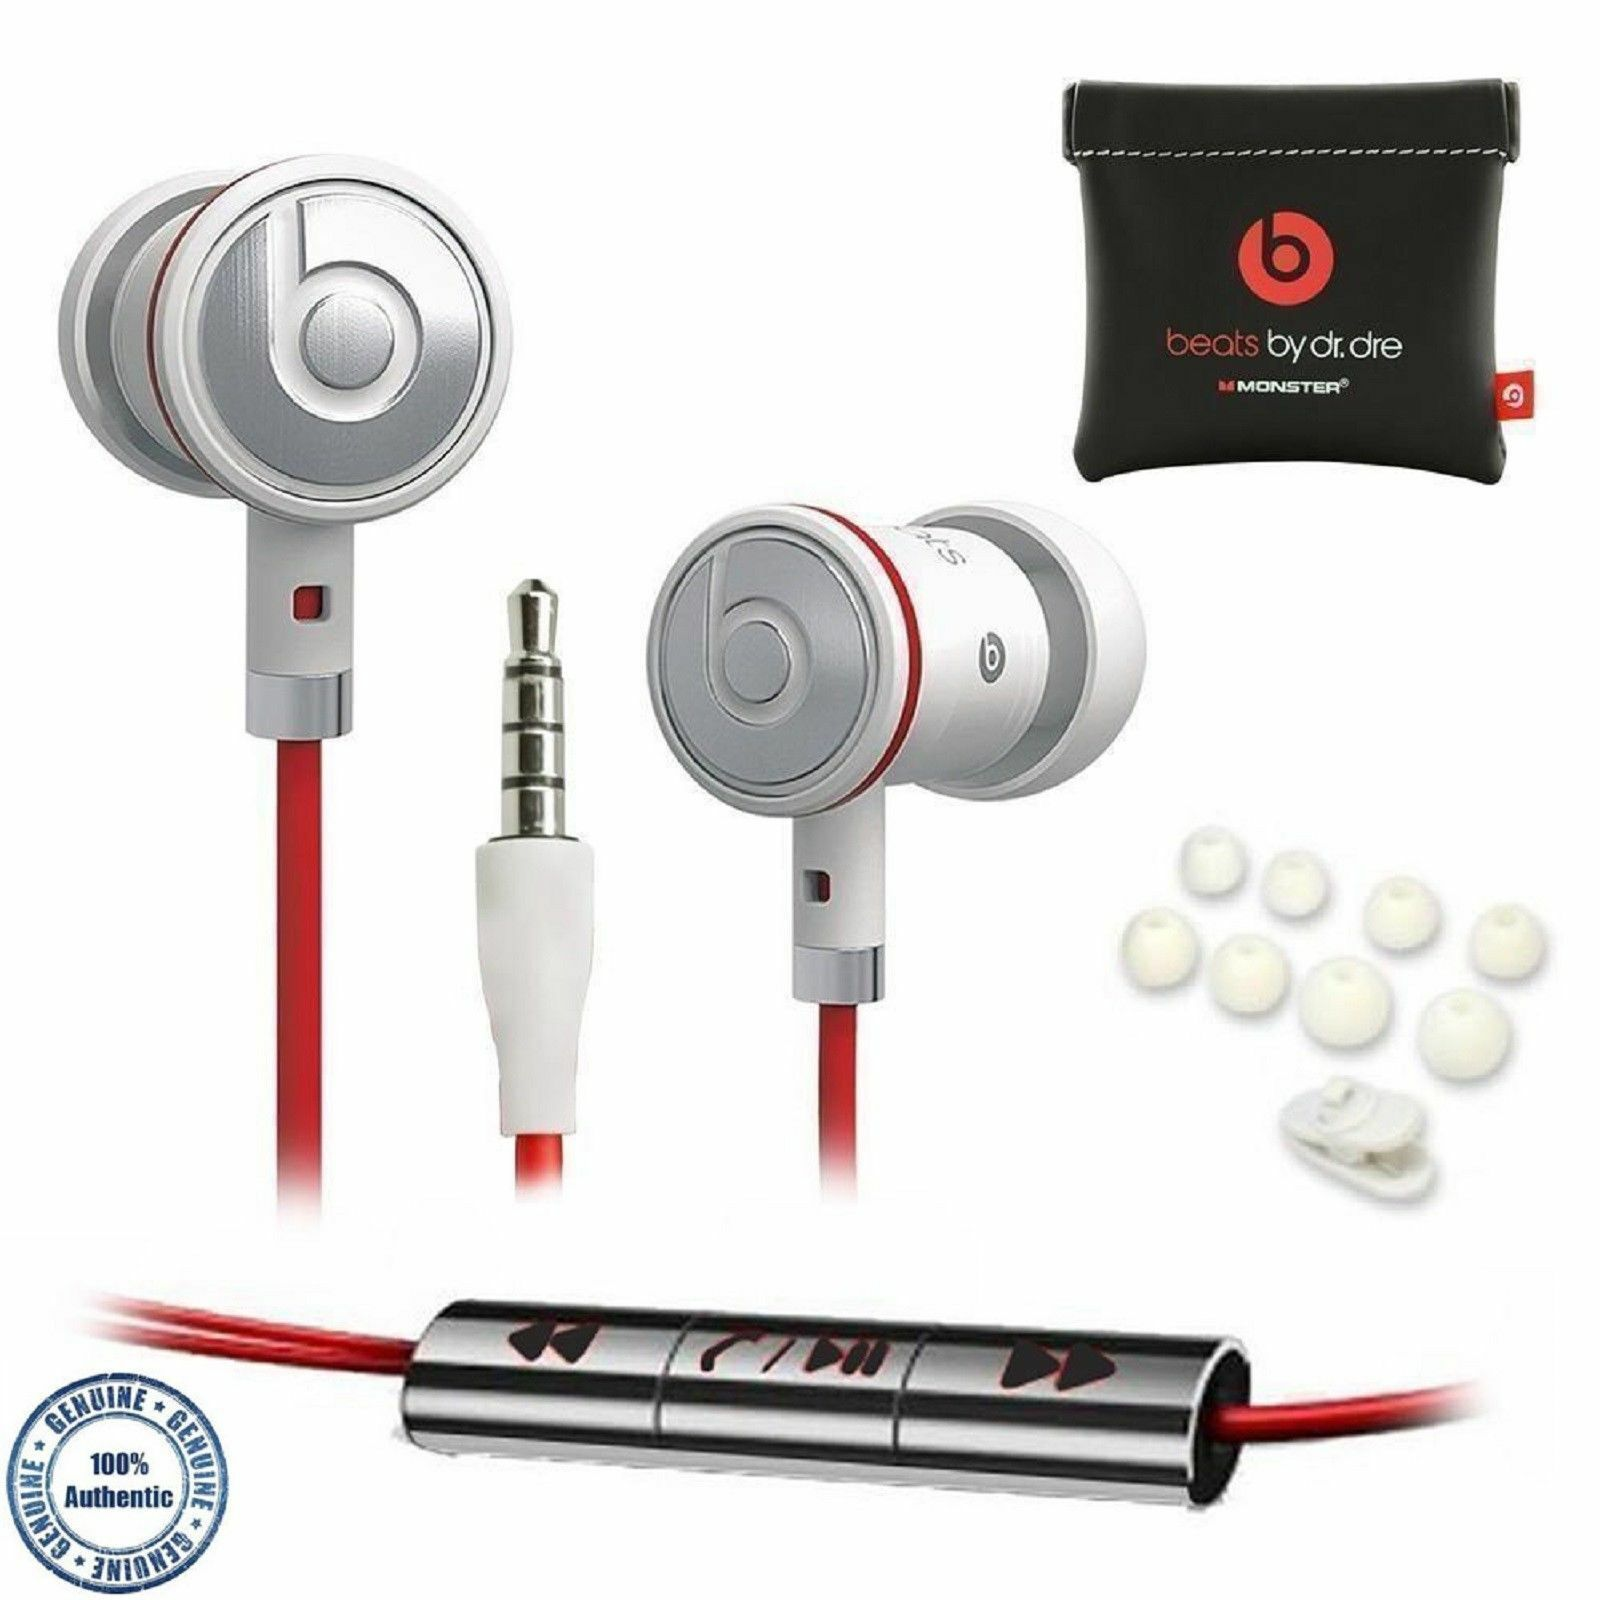 Earbuds beats dr dre - beats by dre earbuds wired